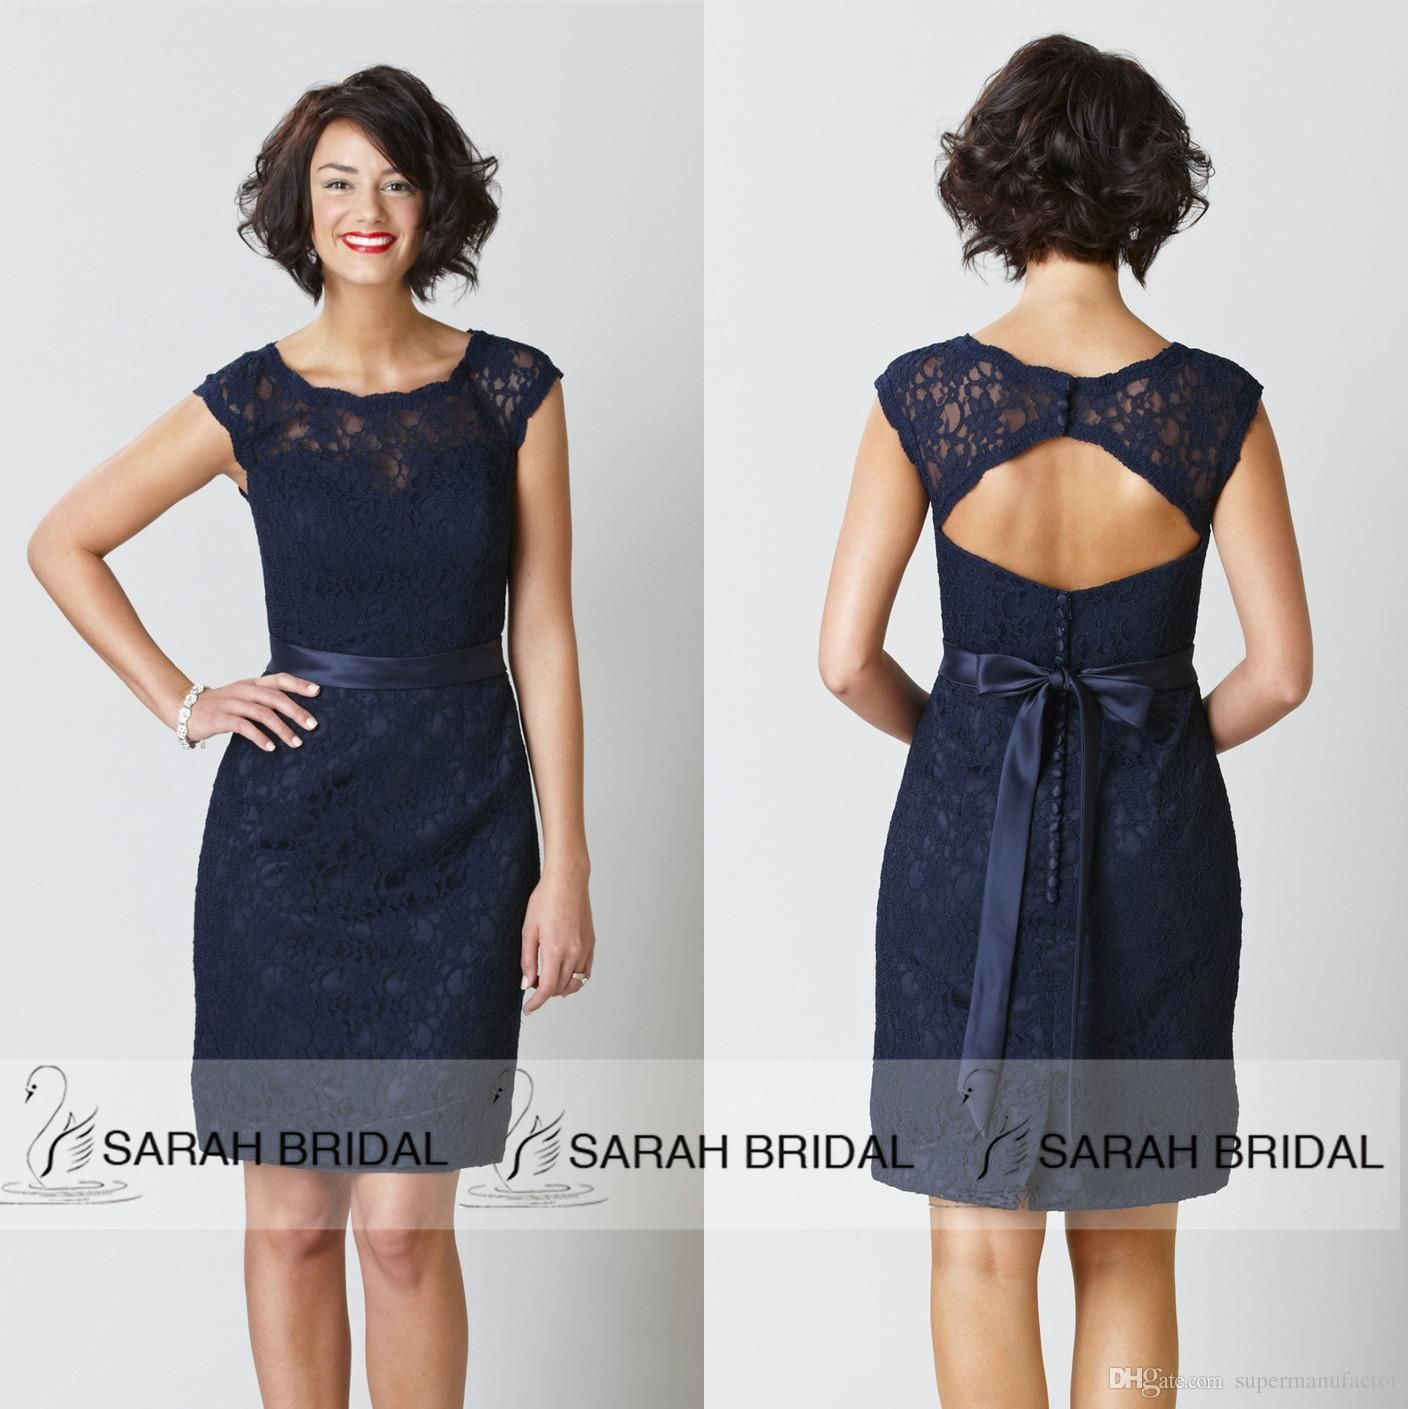 Cheap 2015 navy blue bridesmaid dresses scoop cap sleeve knee length 2015 navy blue bridesmaid dresses scoop cap sleeve knee length bridesmaid dresses lace with sash junior bridesmaids dresses 2018 from supermanufactor 794 ombrellifo Choice Image